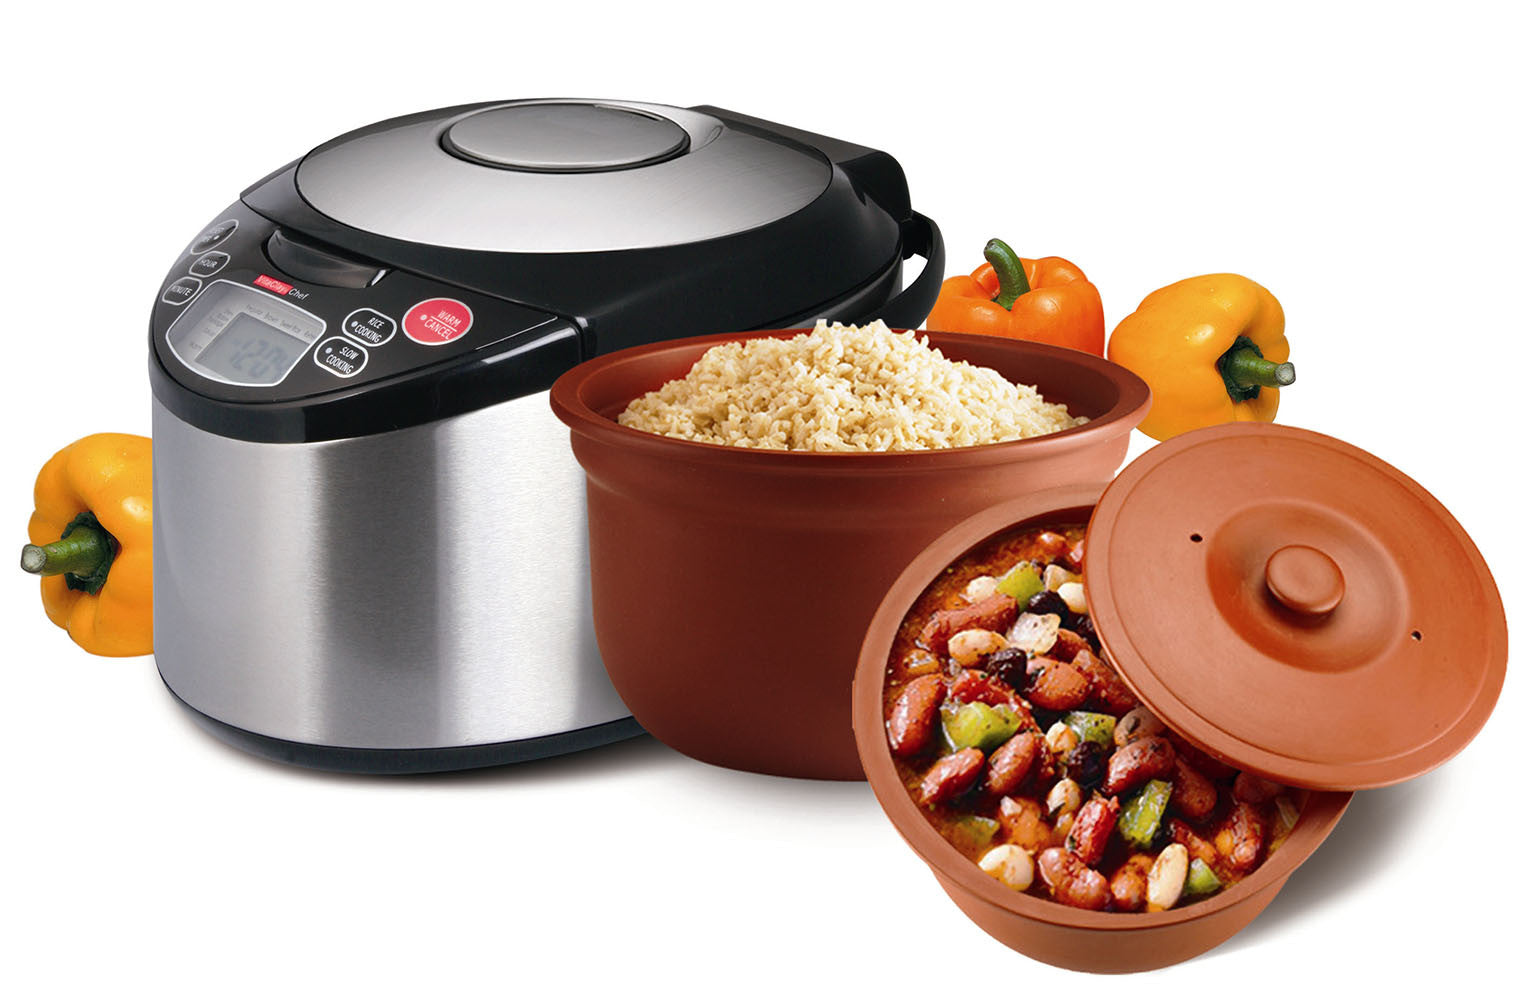 How is VitaClay different from a Pressure Cooker?